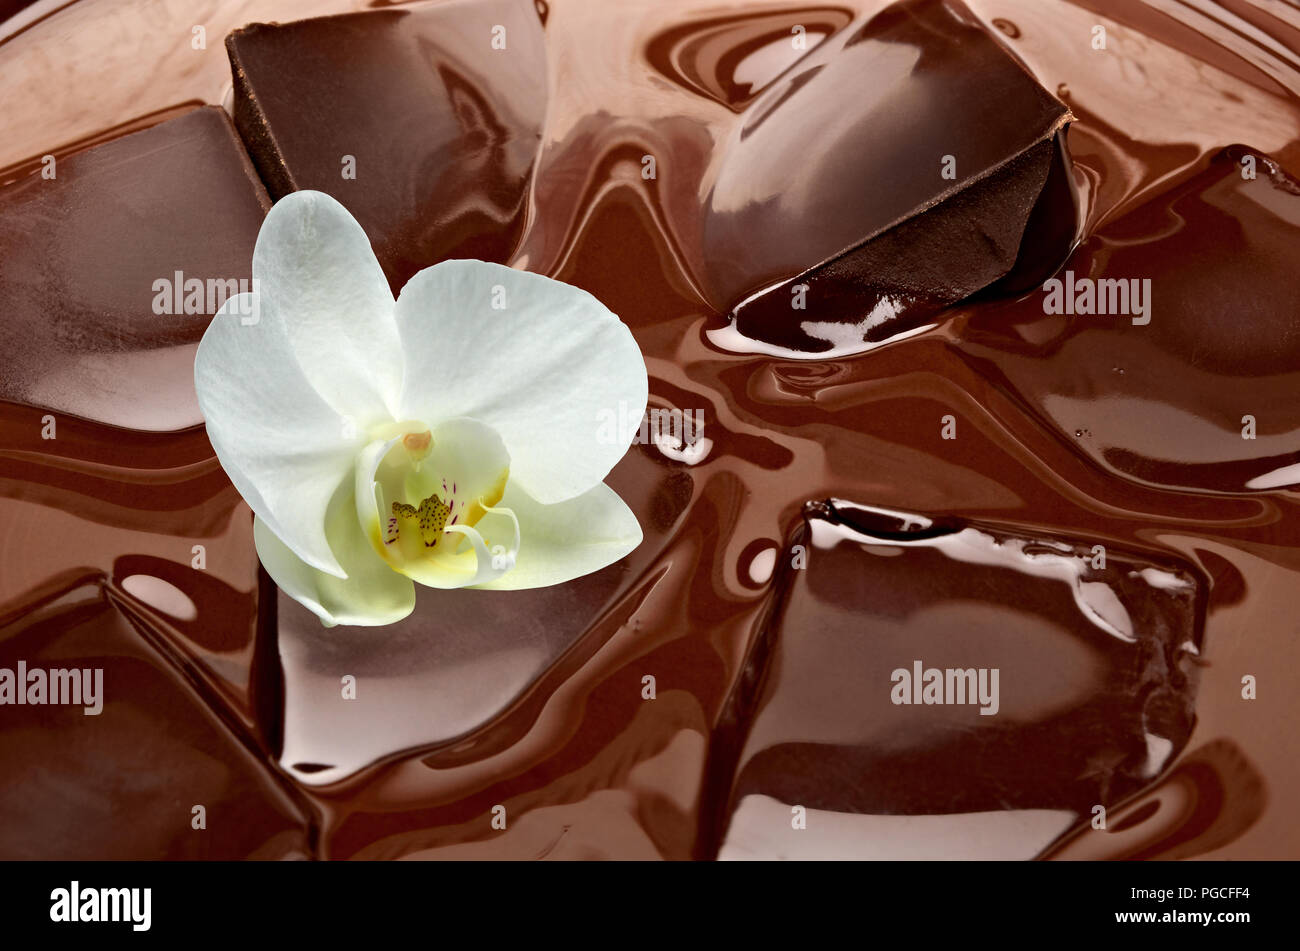 Melting chocolate with chocolate bars in bowl - Stock Image